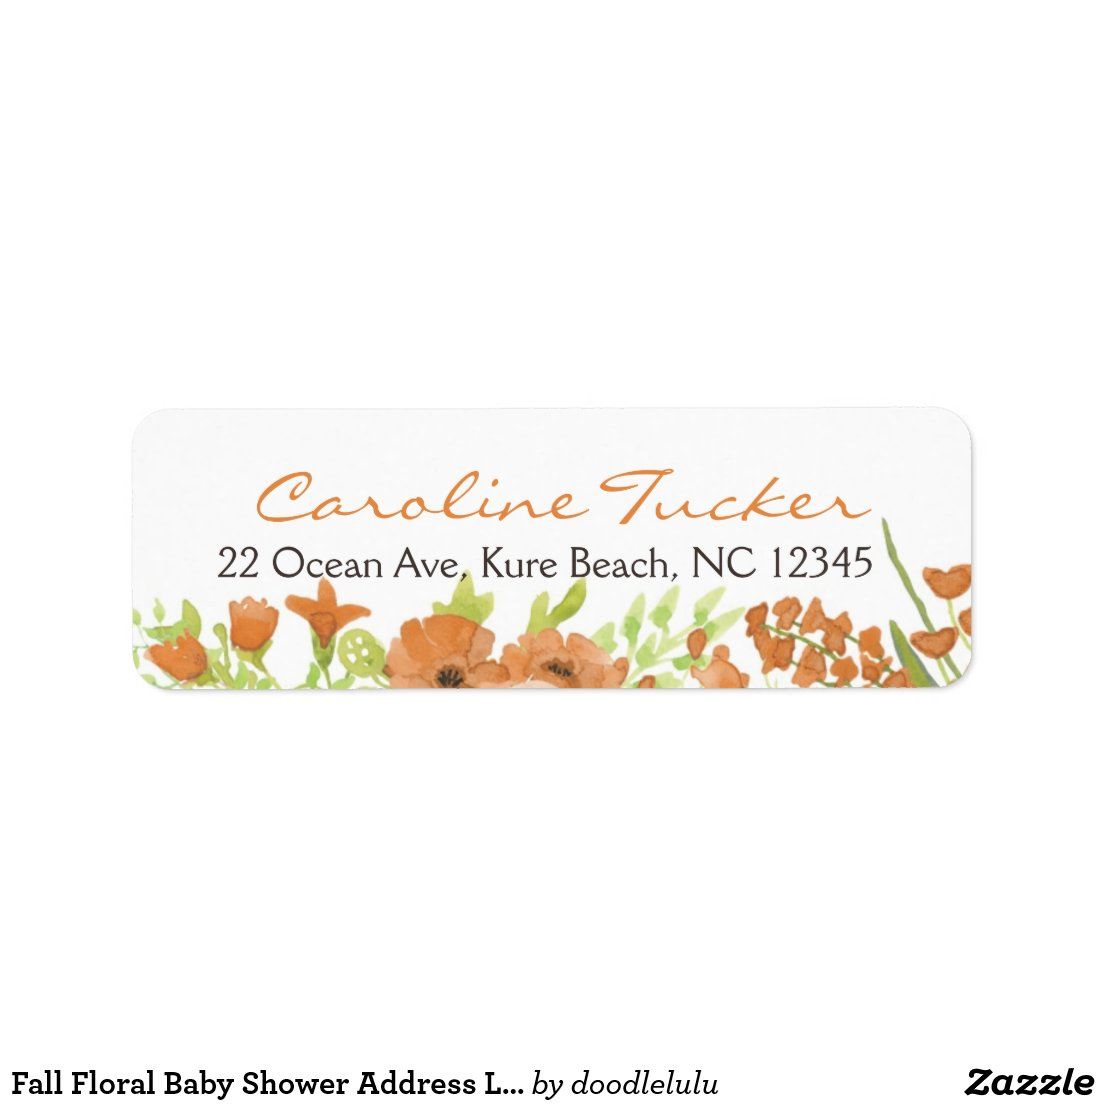 Fall Floral Baby Shower Address Label